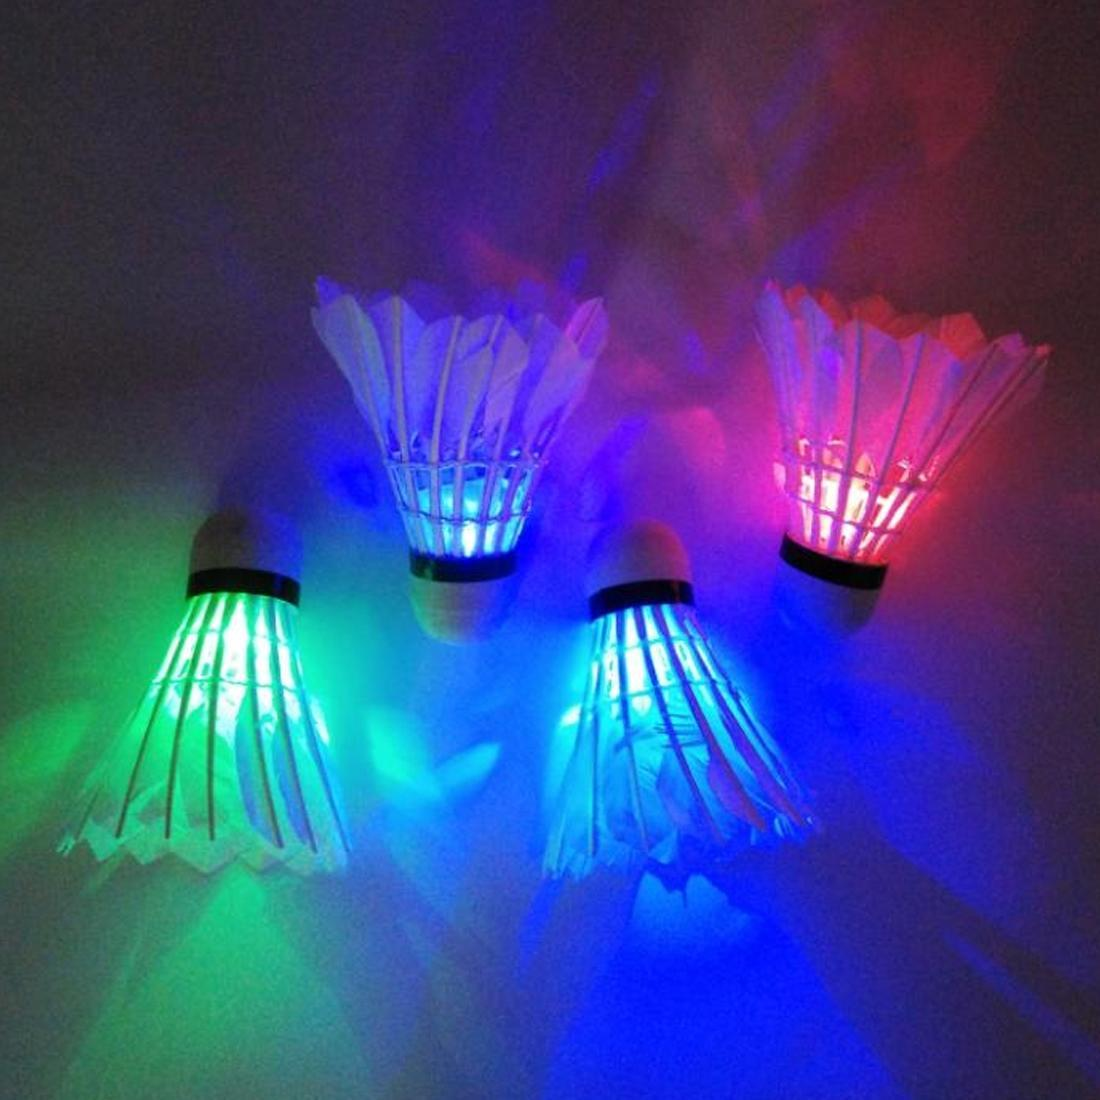 Practical 4 PCs Colorful LED Badminton Shuttlecock Ball Feather Glow In Night Outdoor Entertainment Sport Accessories }